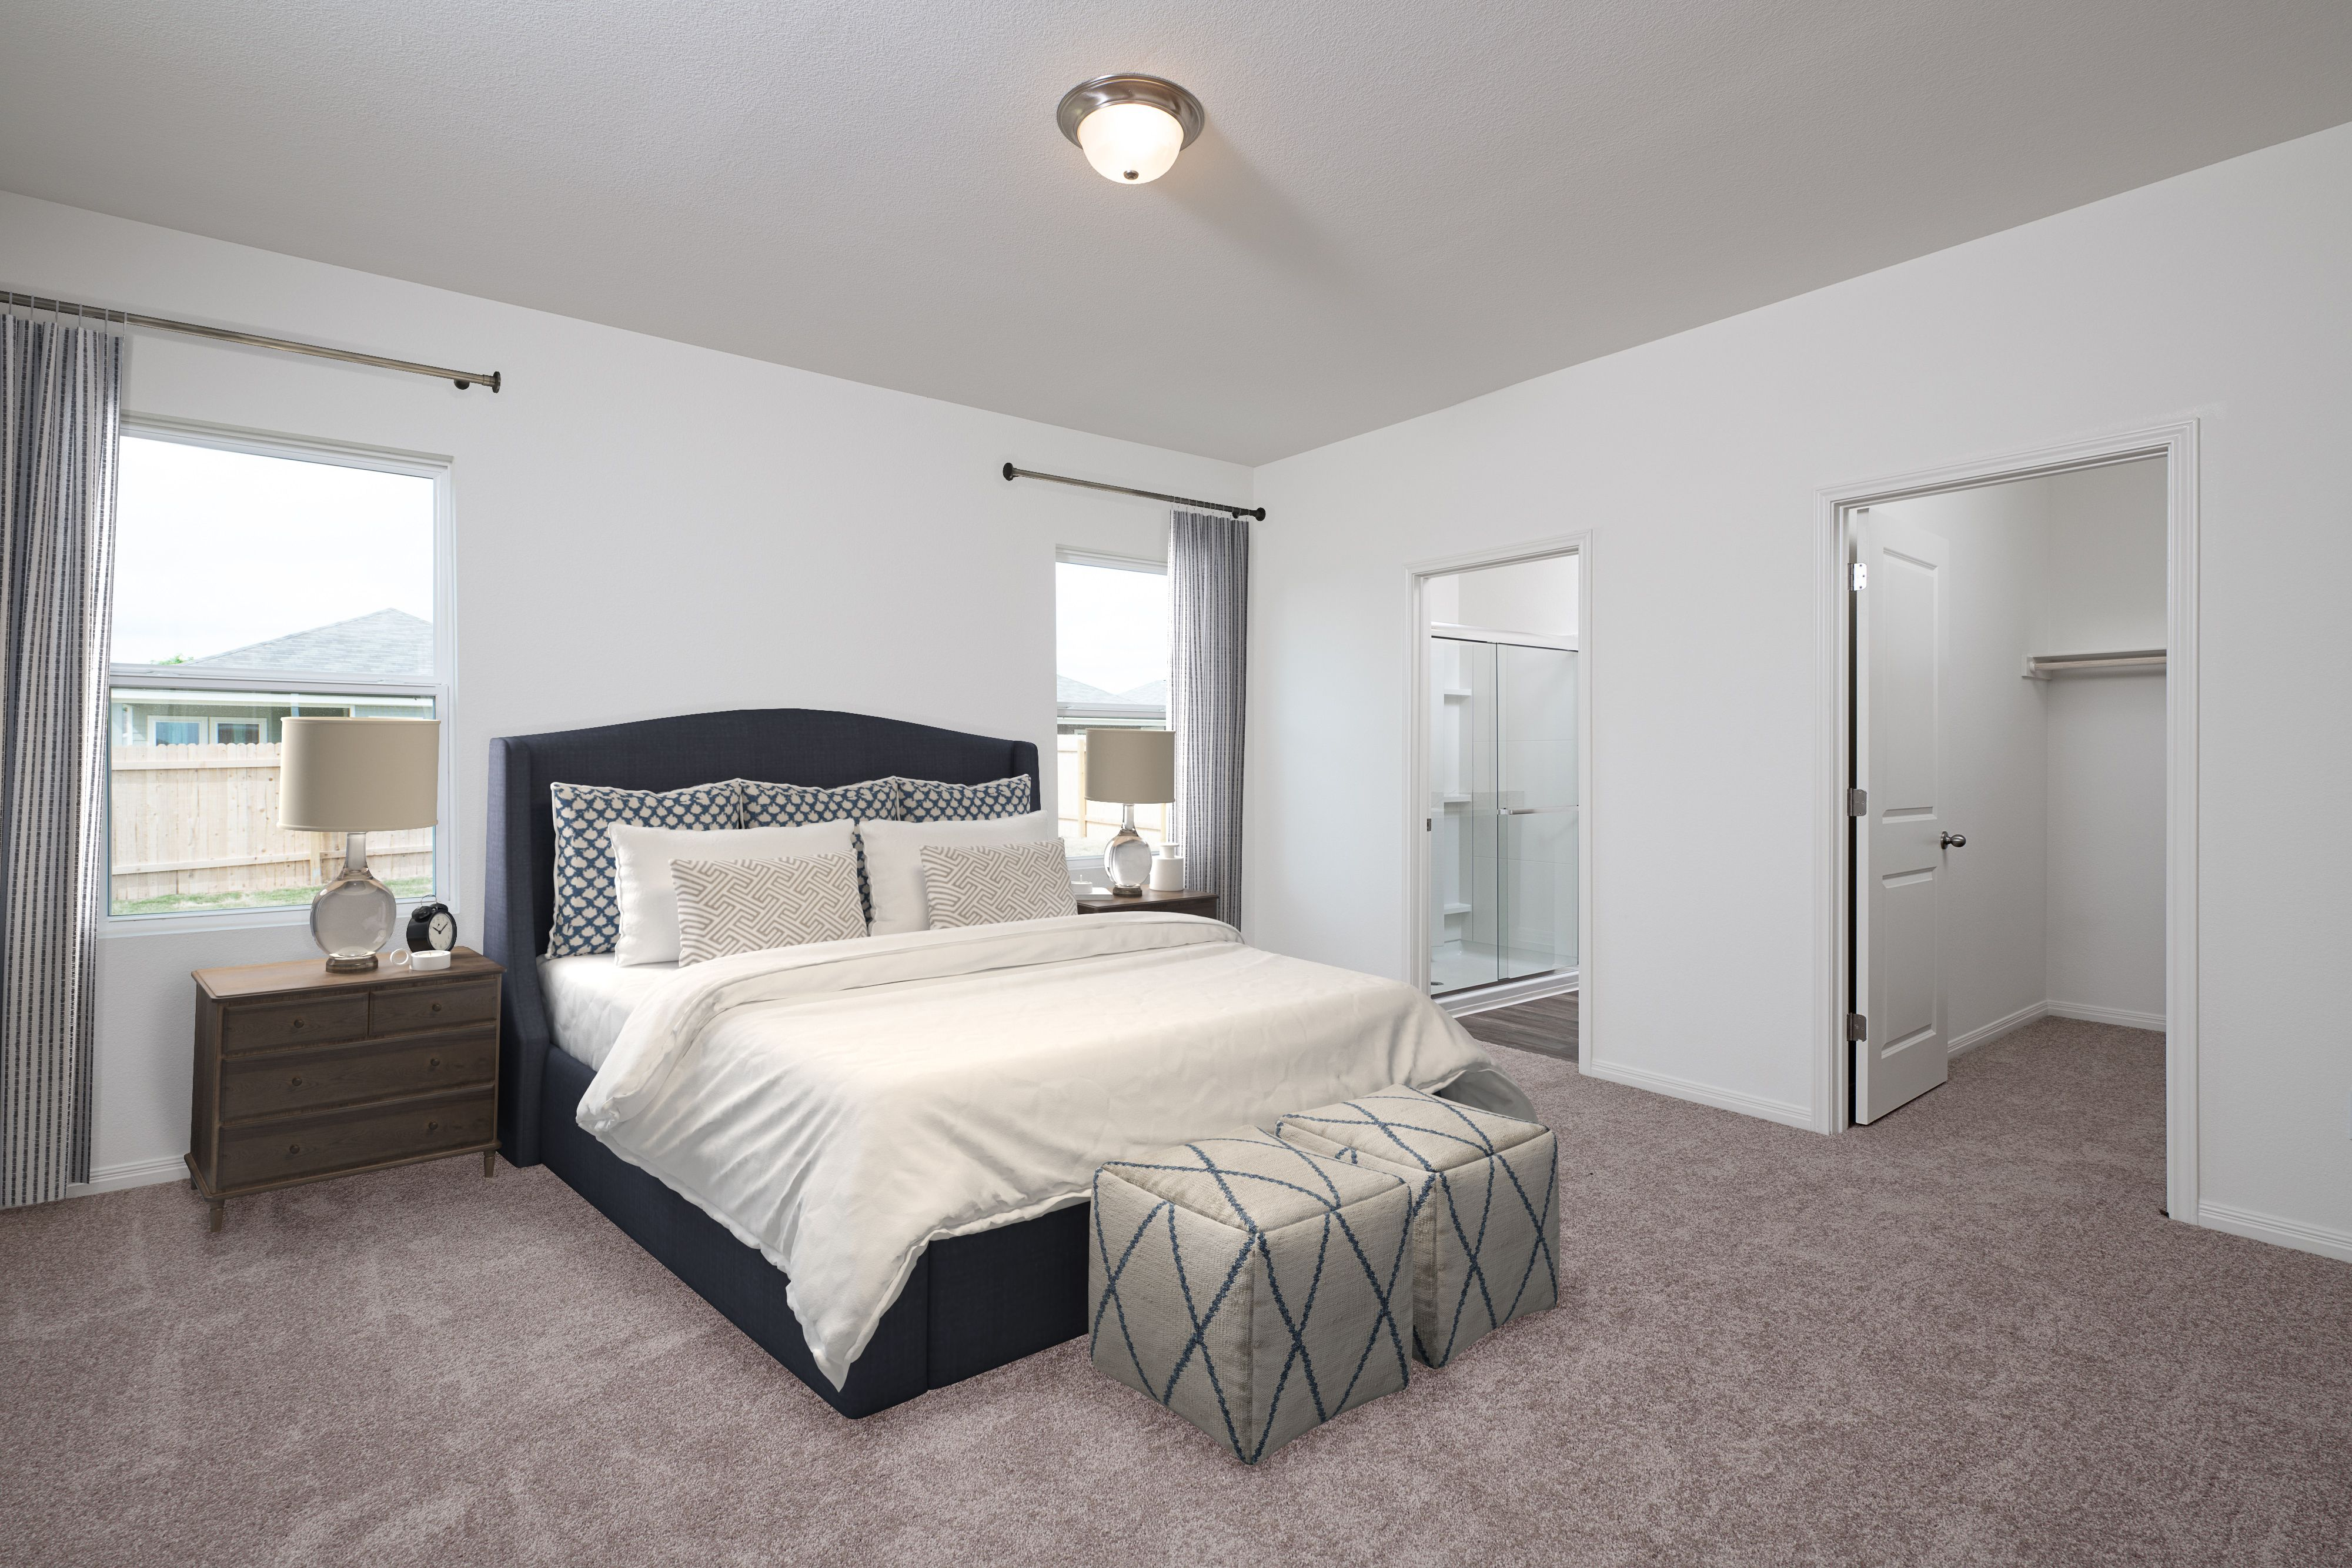 Bedroom featured in the Glimmer By Starlight Homes in Lakeland-Winter Haven, FL